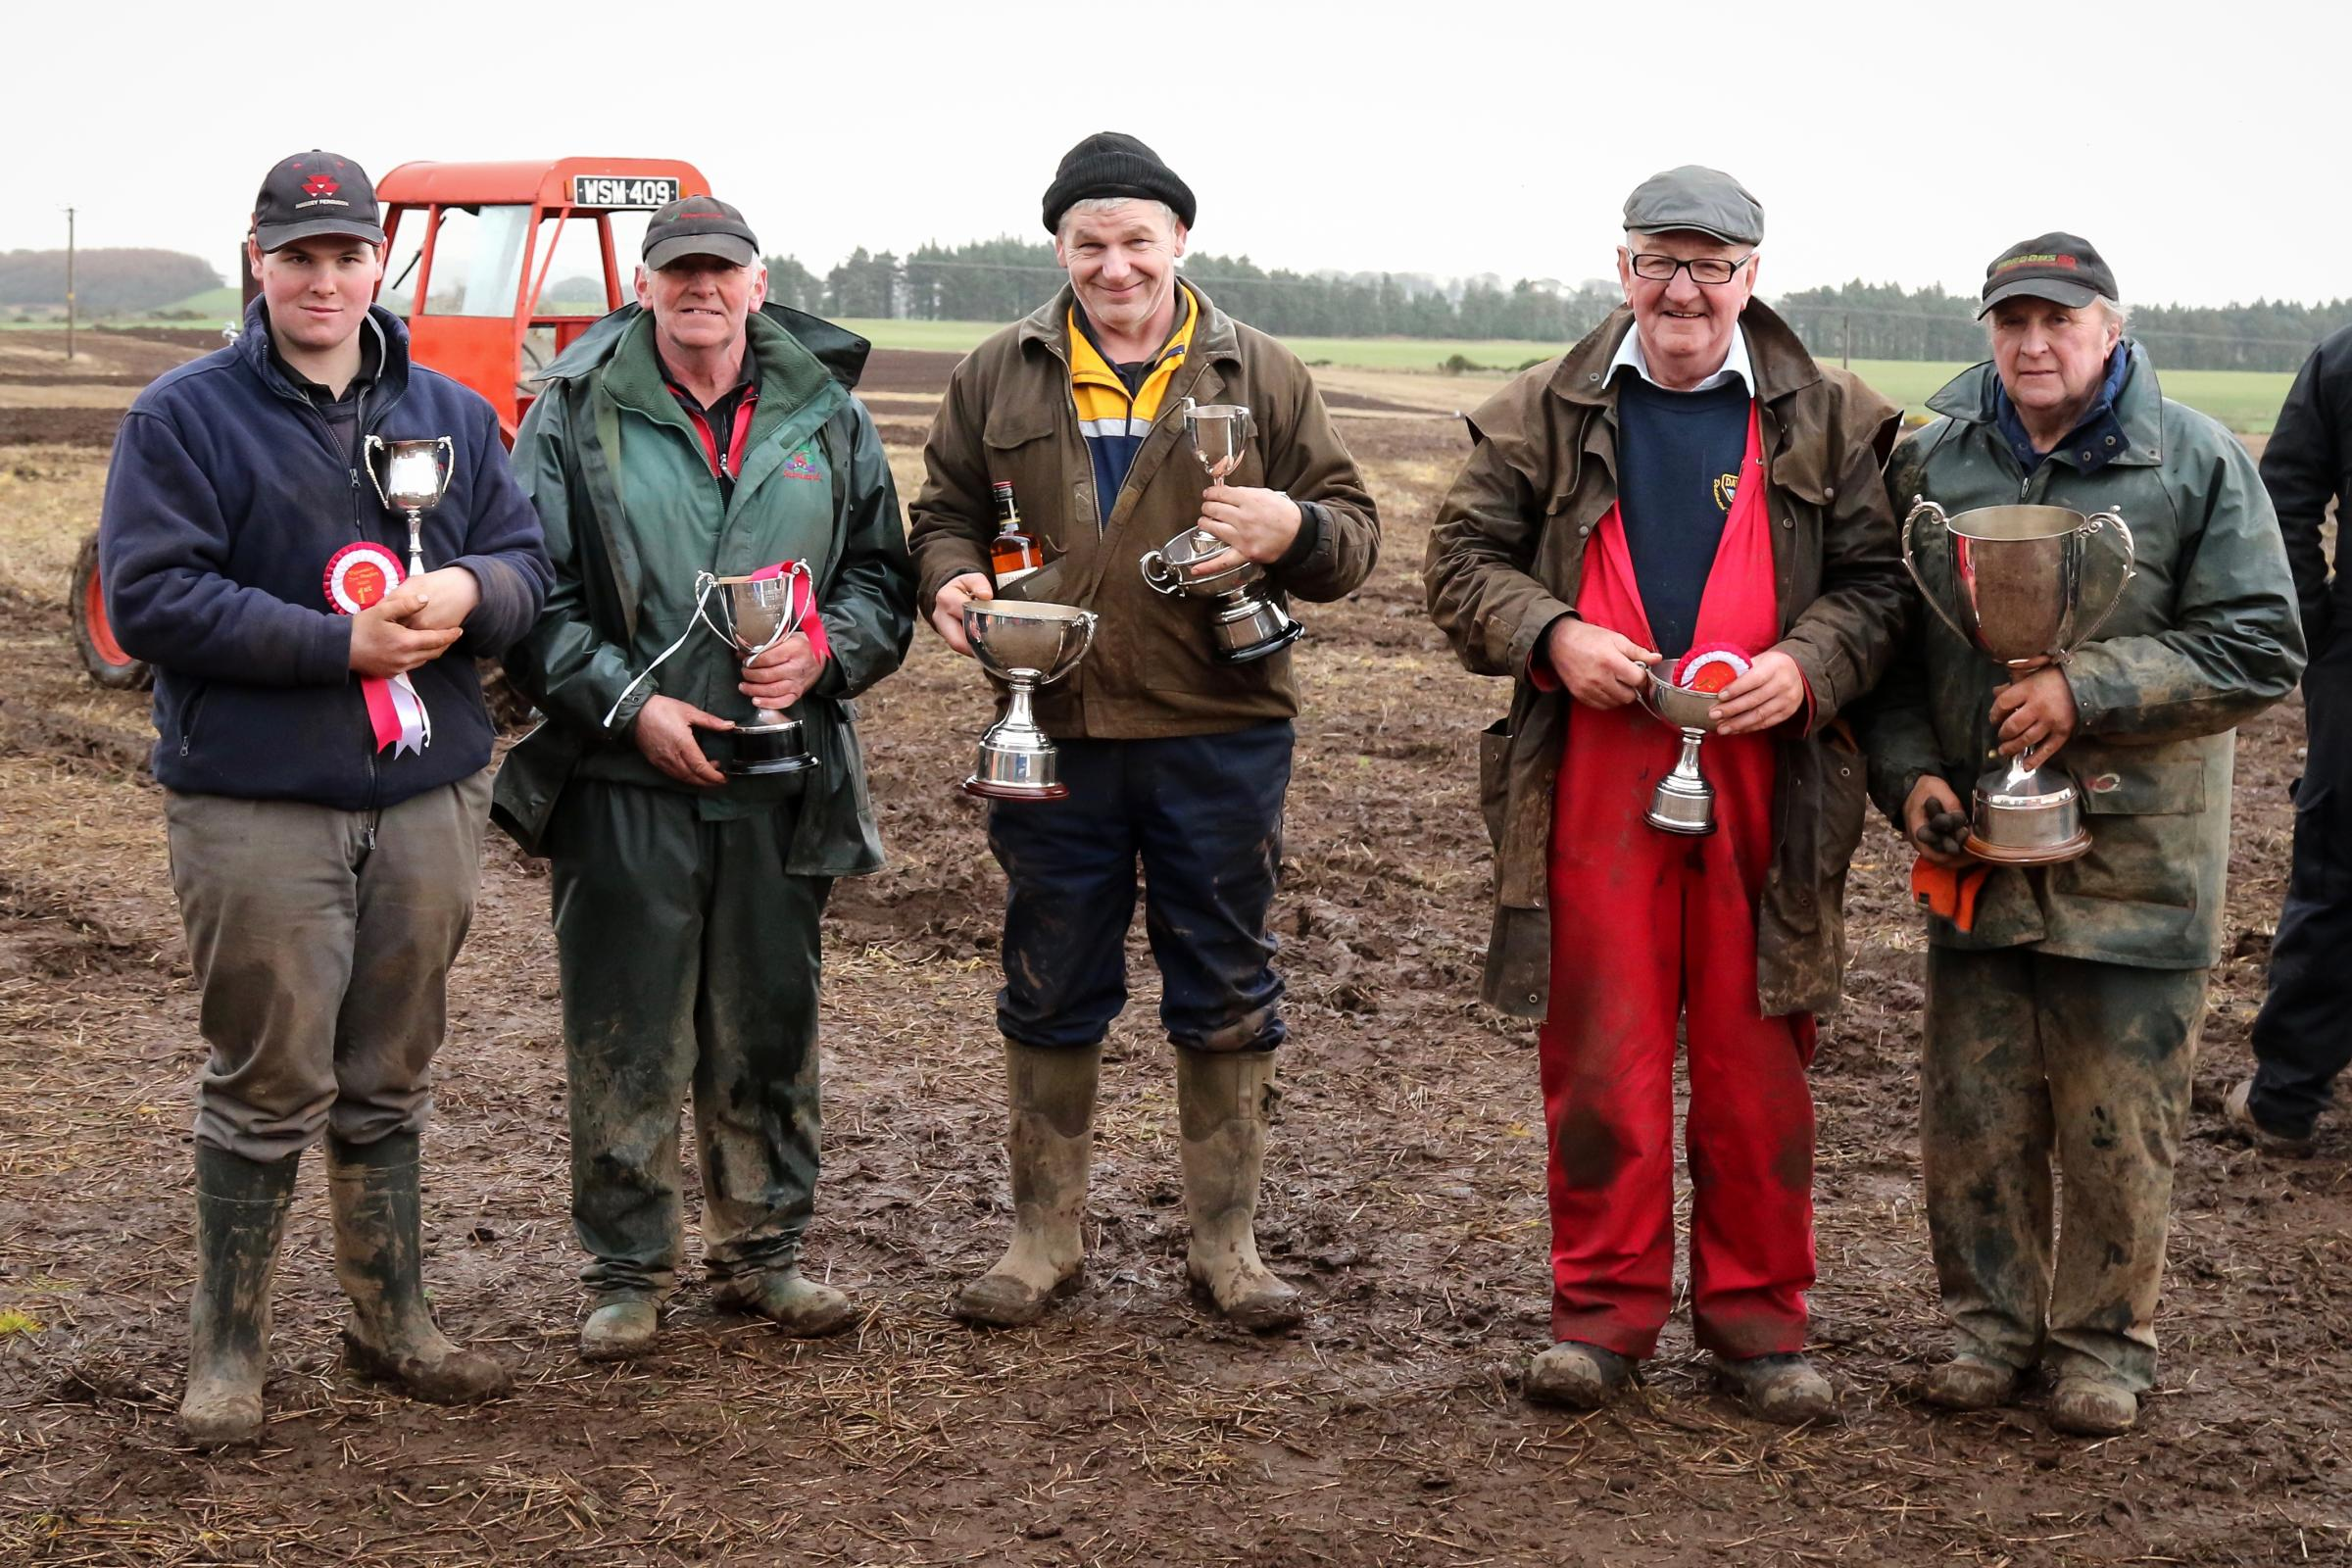 Trophy presentation line up, from left to right, J Magnay, G McLachlan, A Brown, D Kirkpatrick, J McBratney